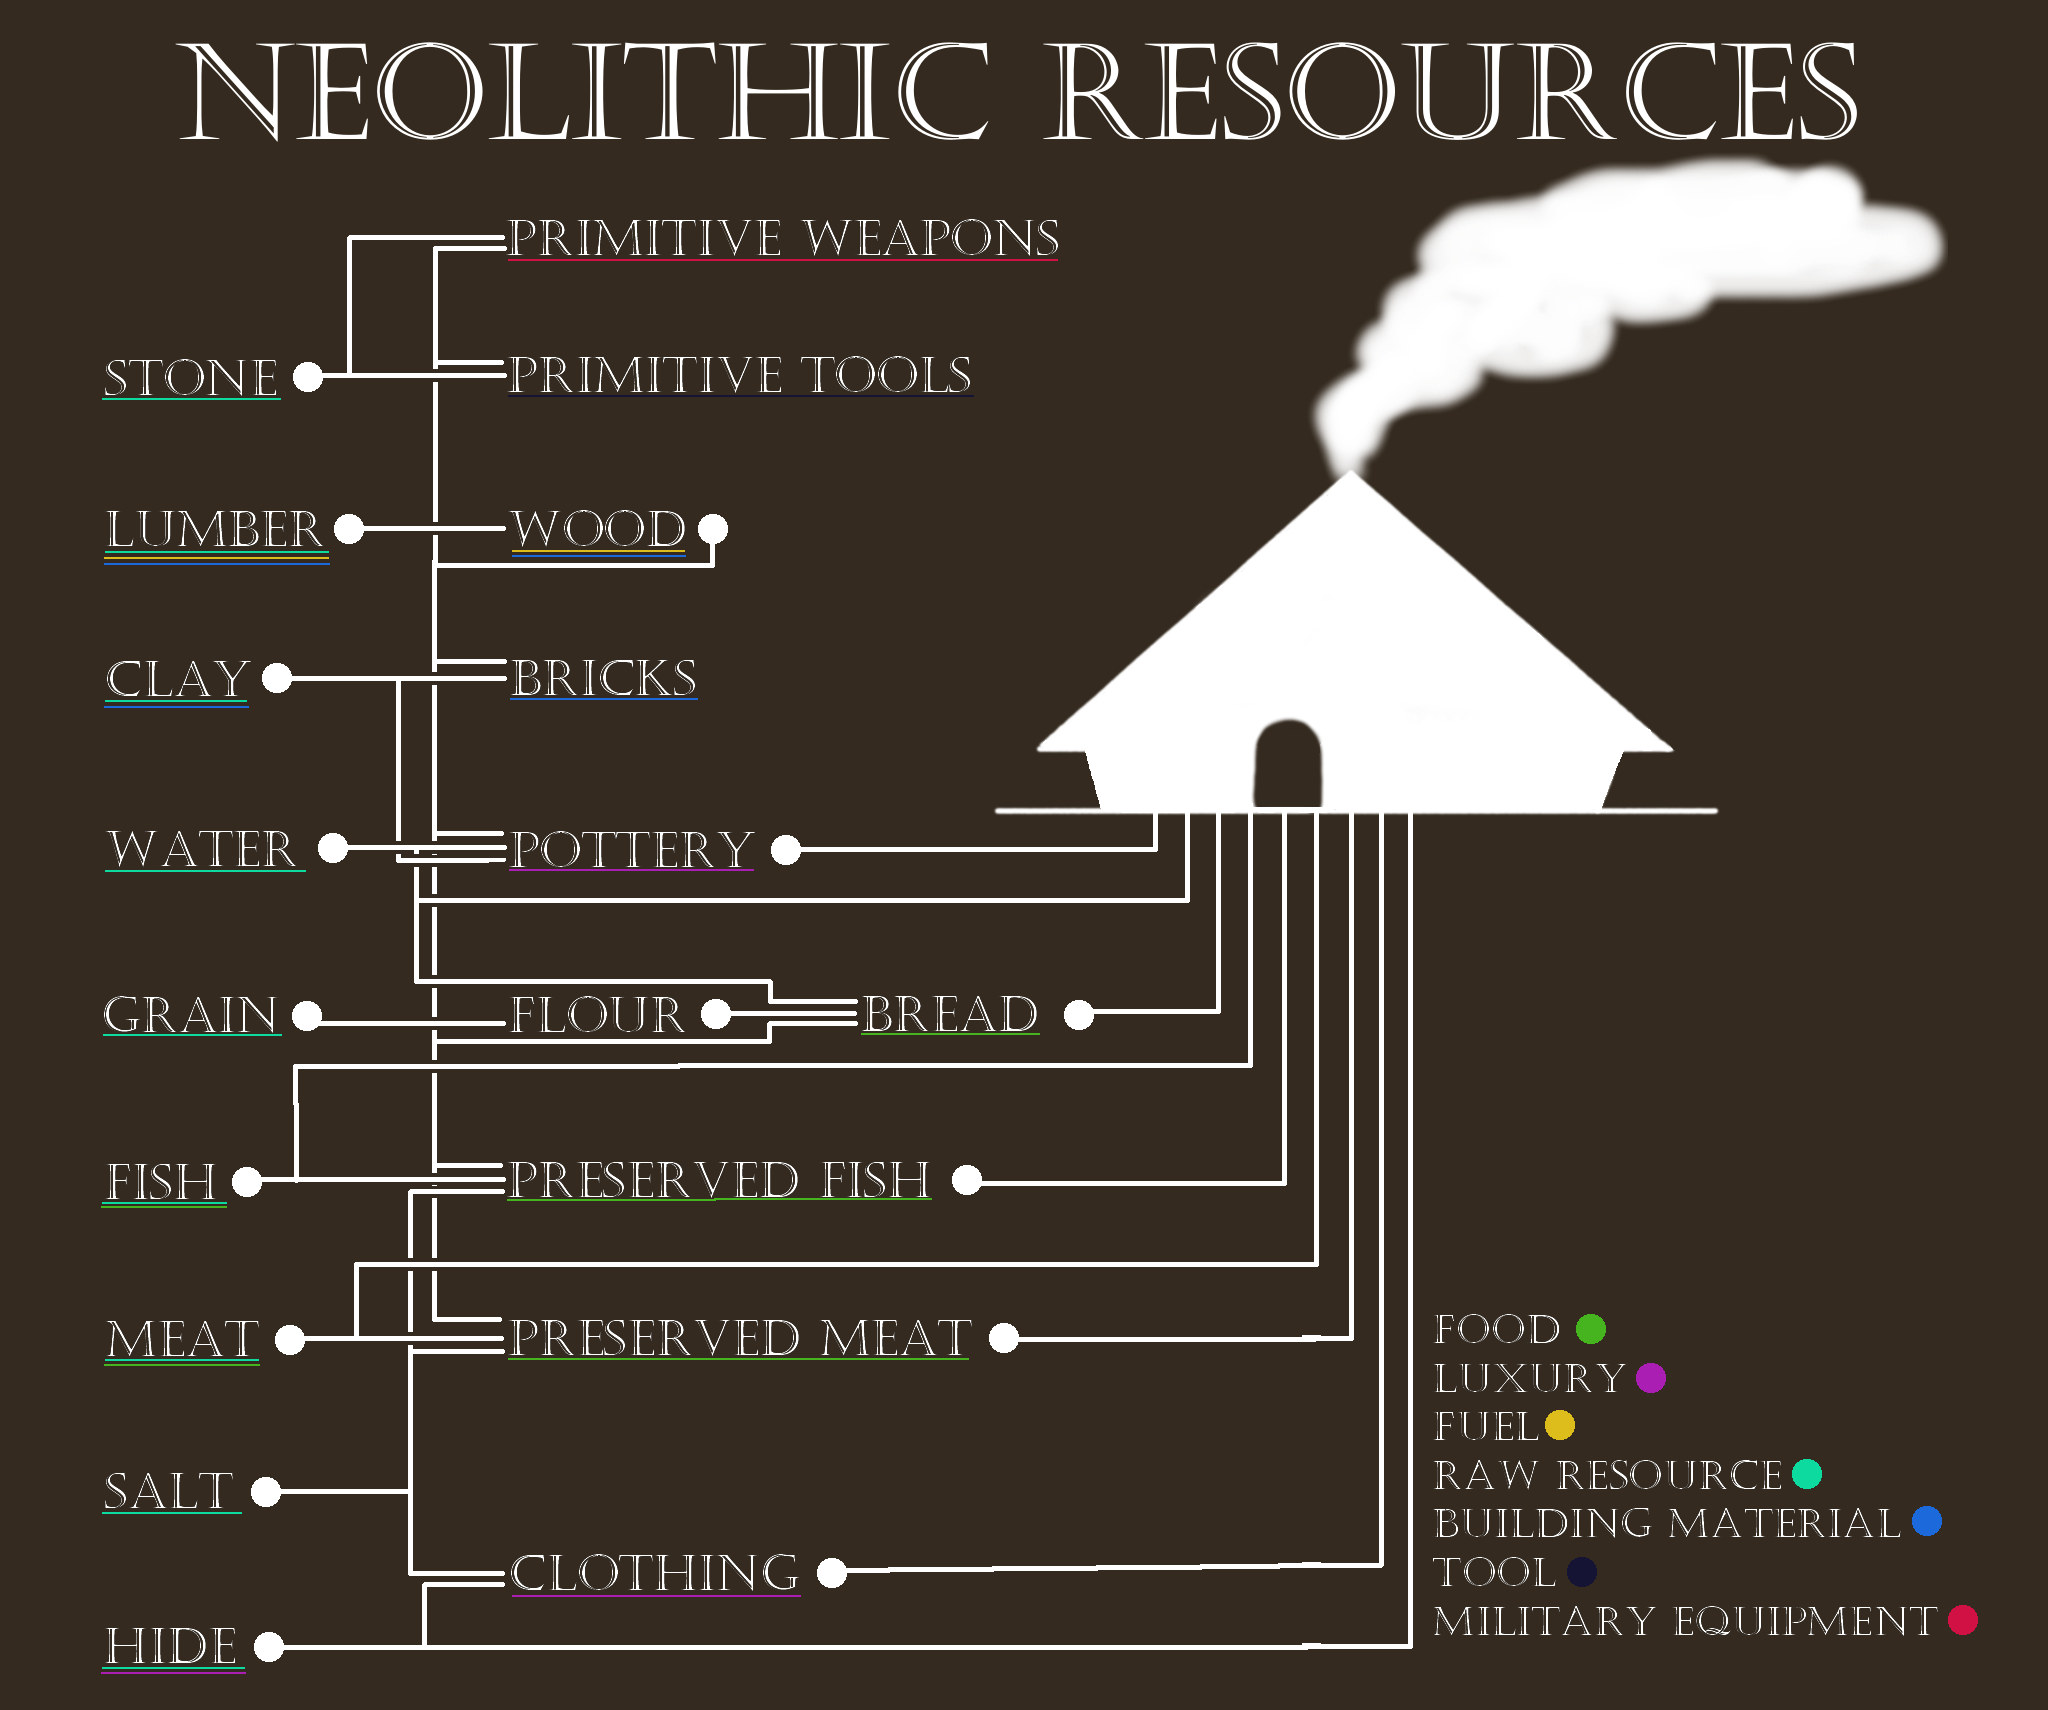 neolithic resources